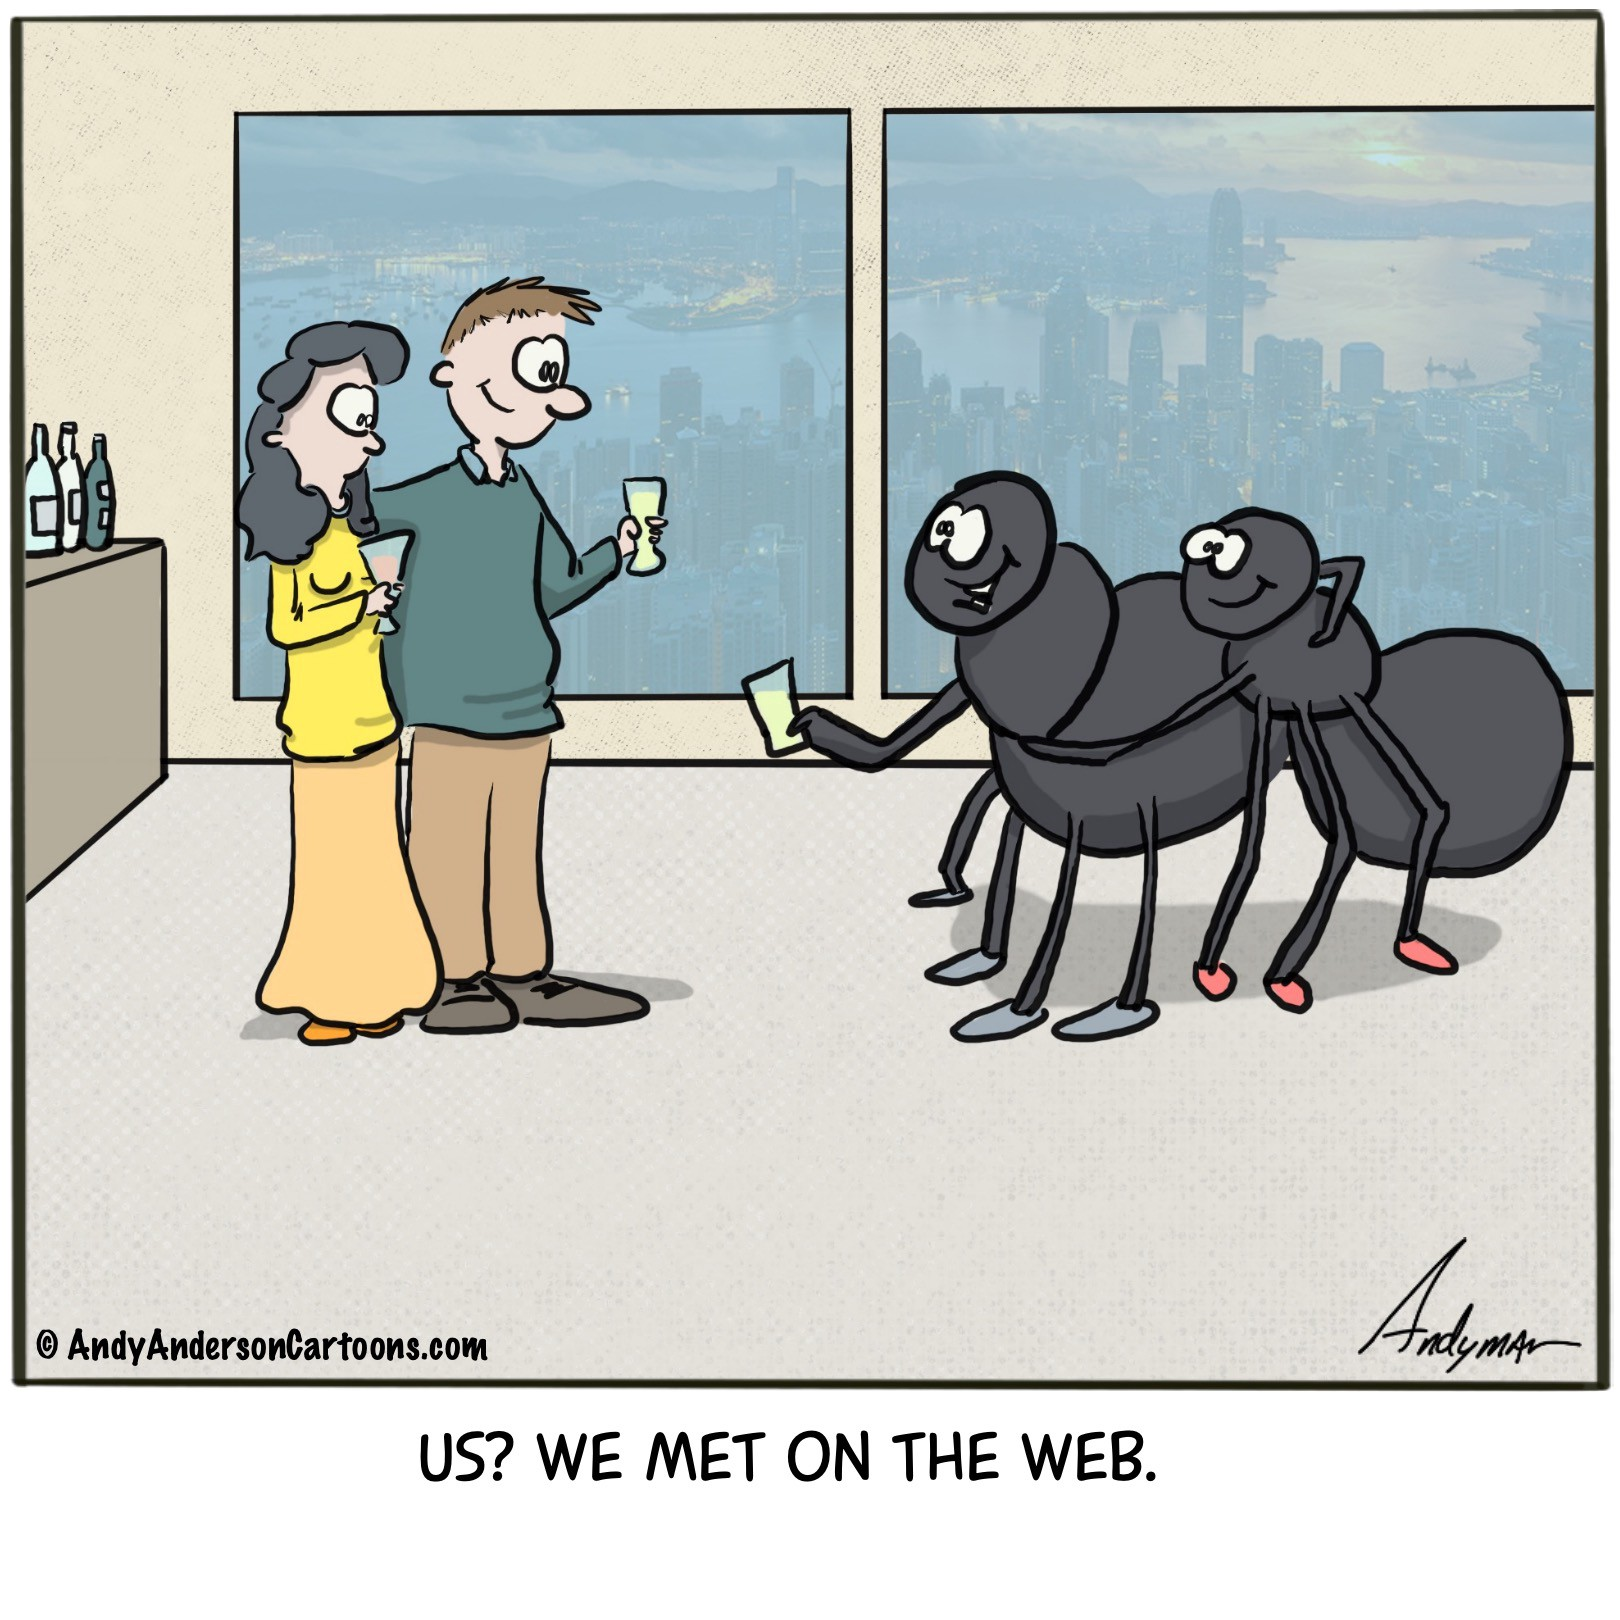 Cartoon about spiders who met on the web by Andy Anderson